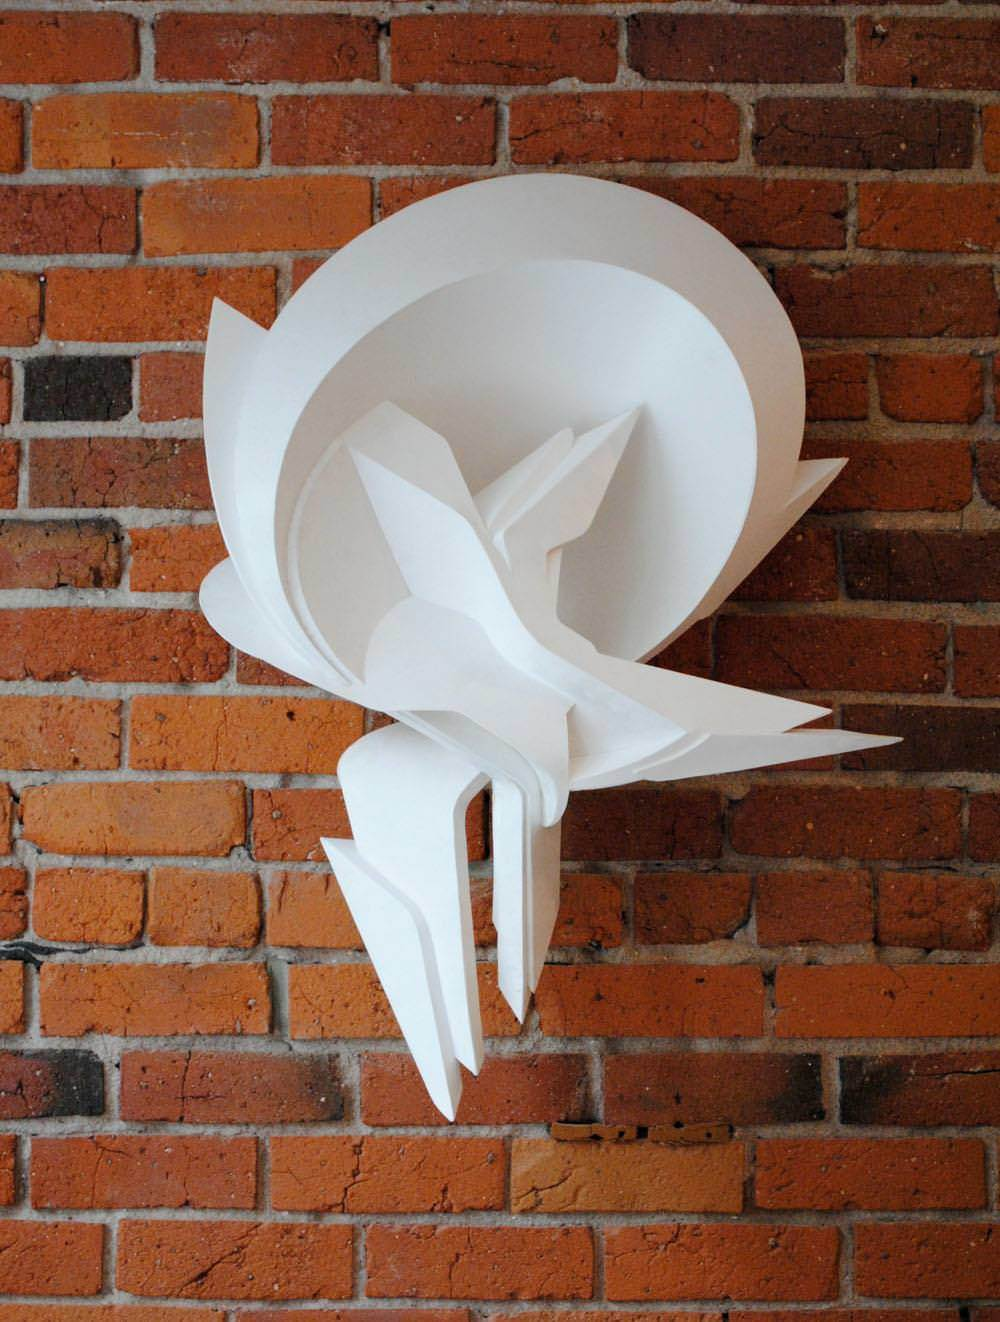 3d graffiti sculptures by peeta give a new perspective to